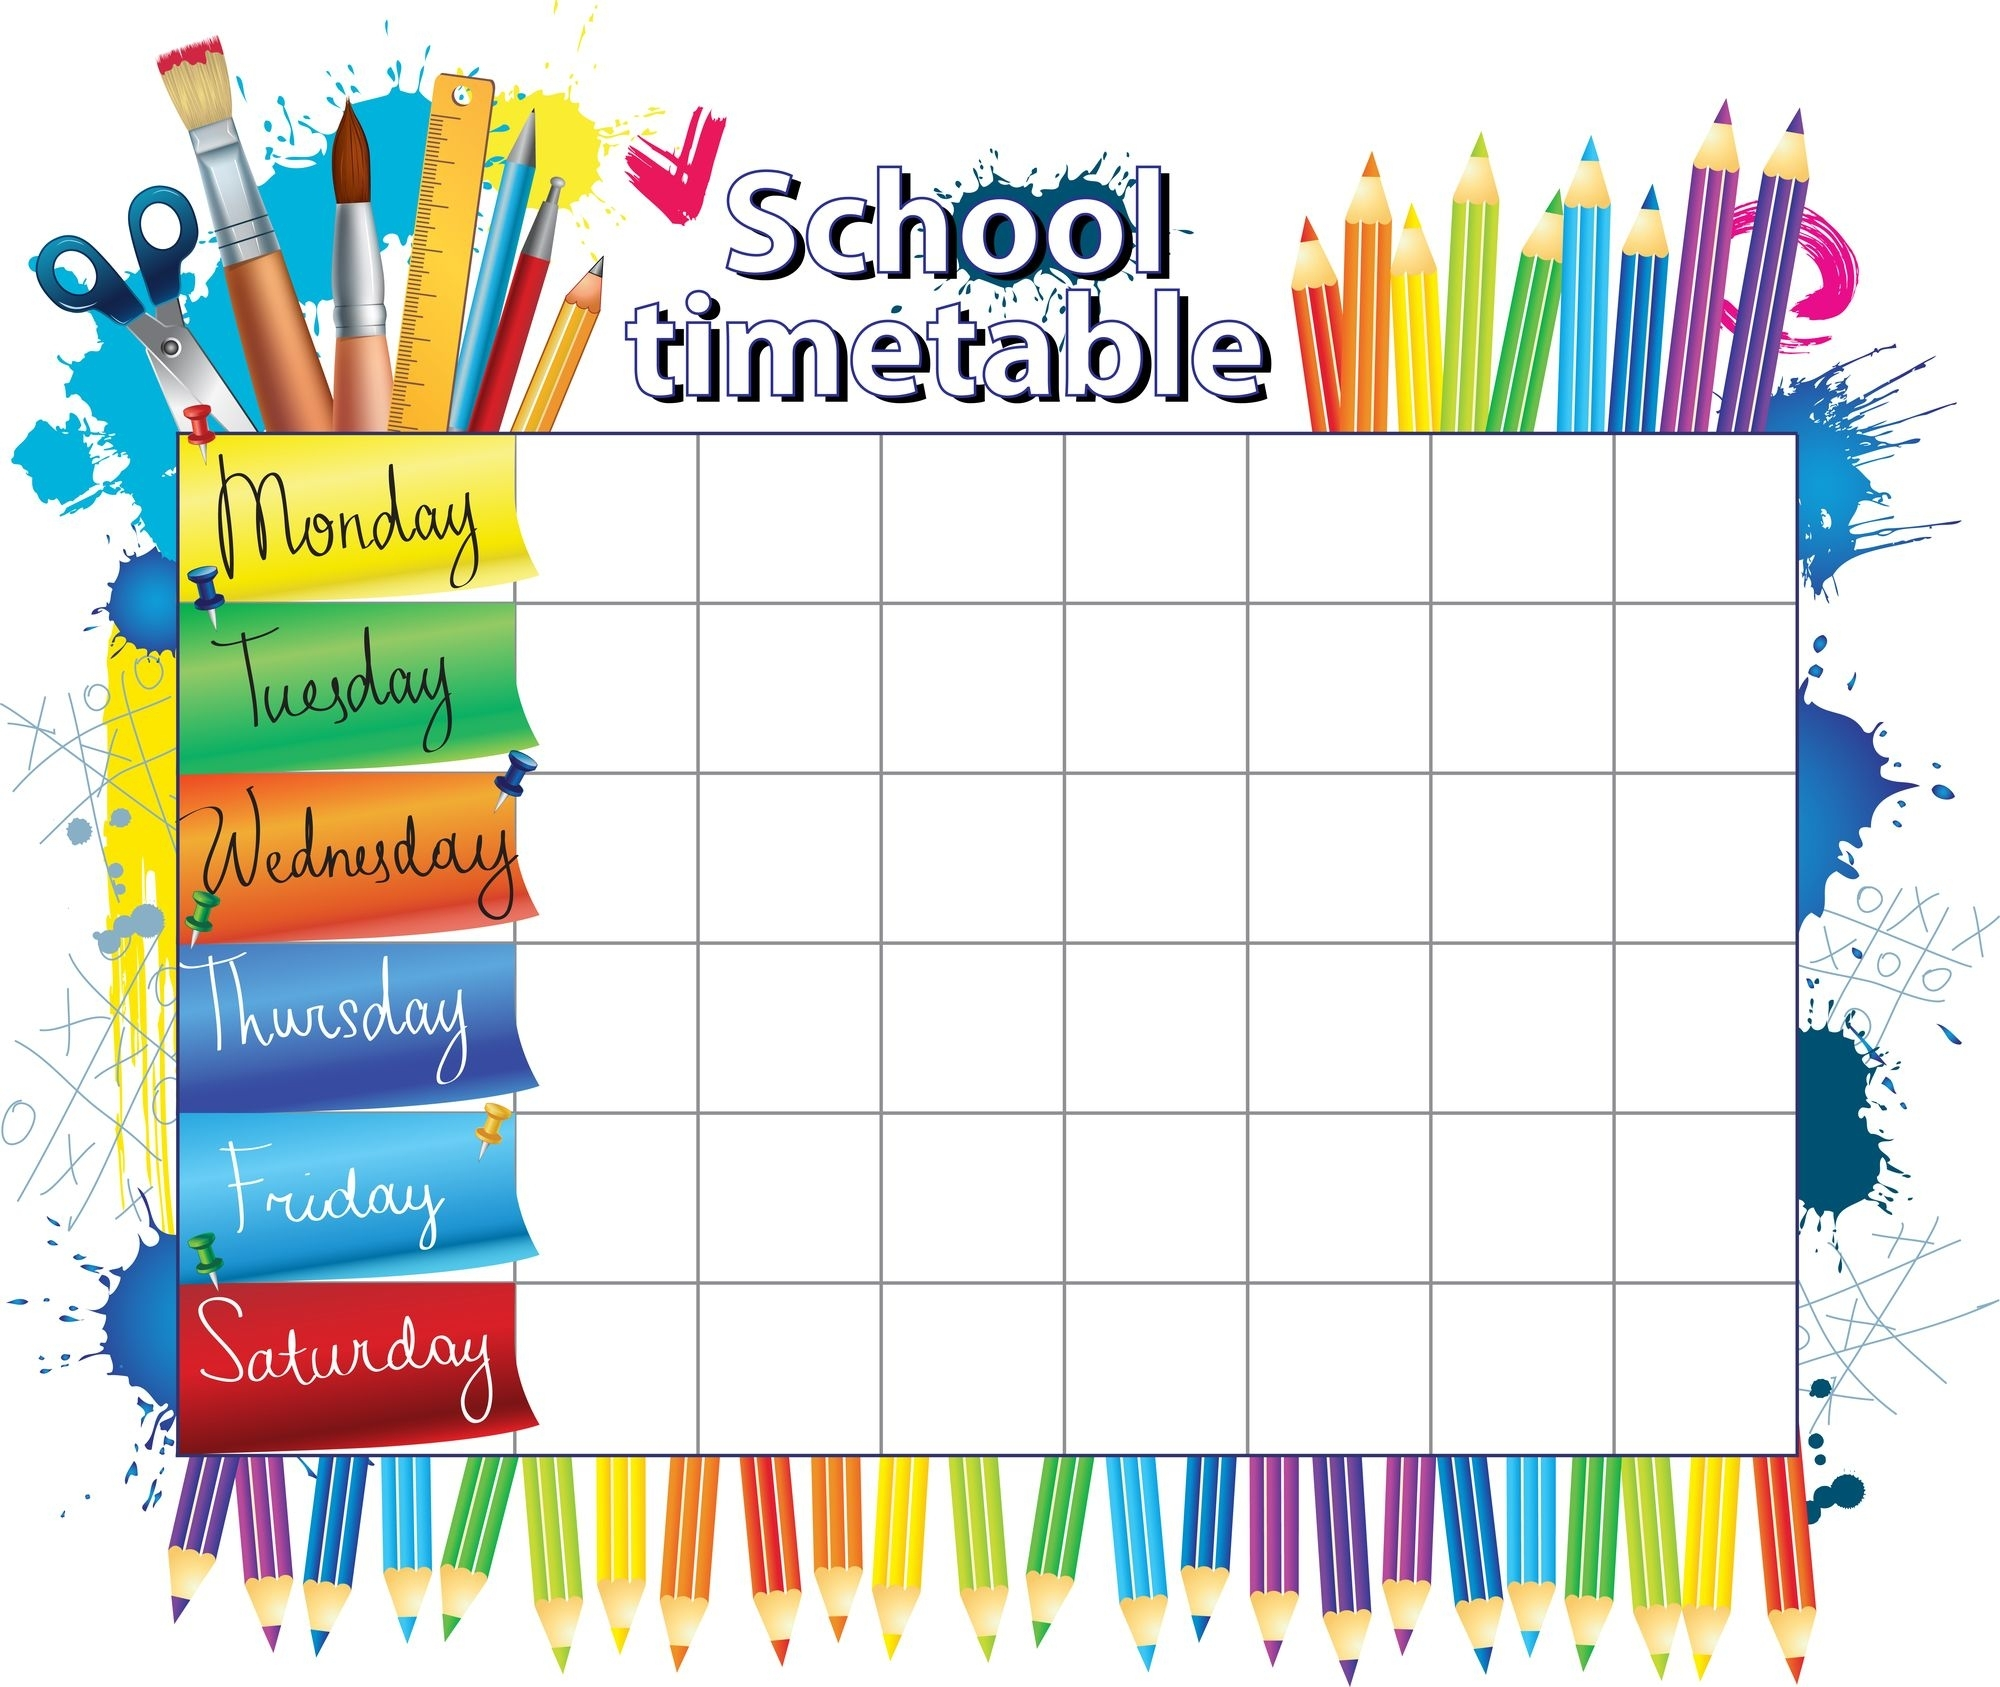 Collect 5 Day School Timetable